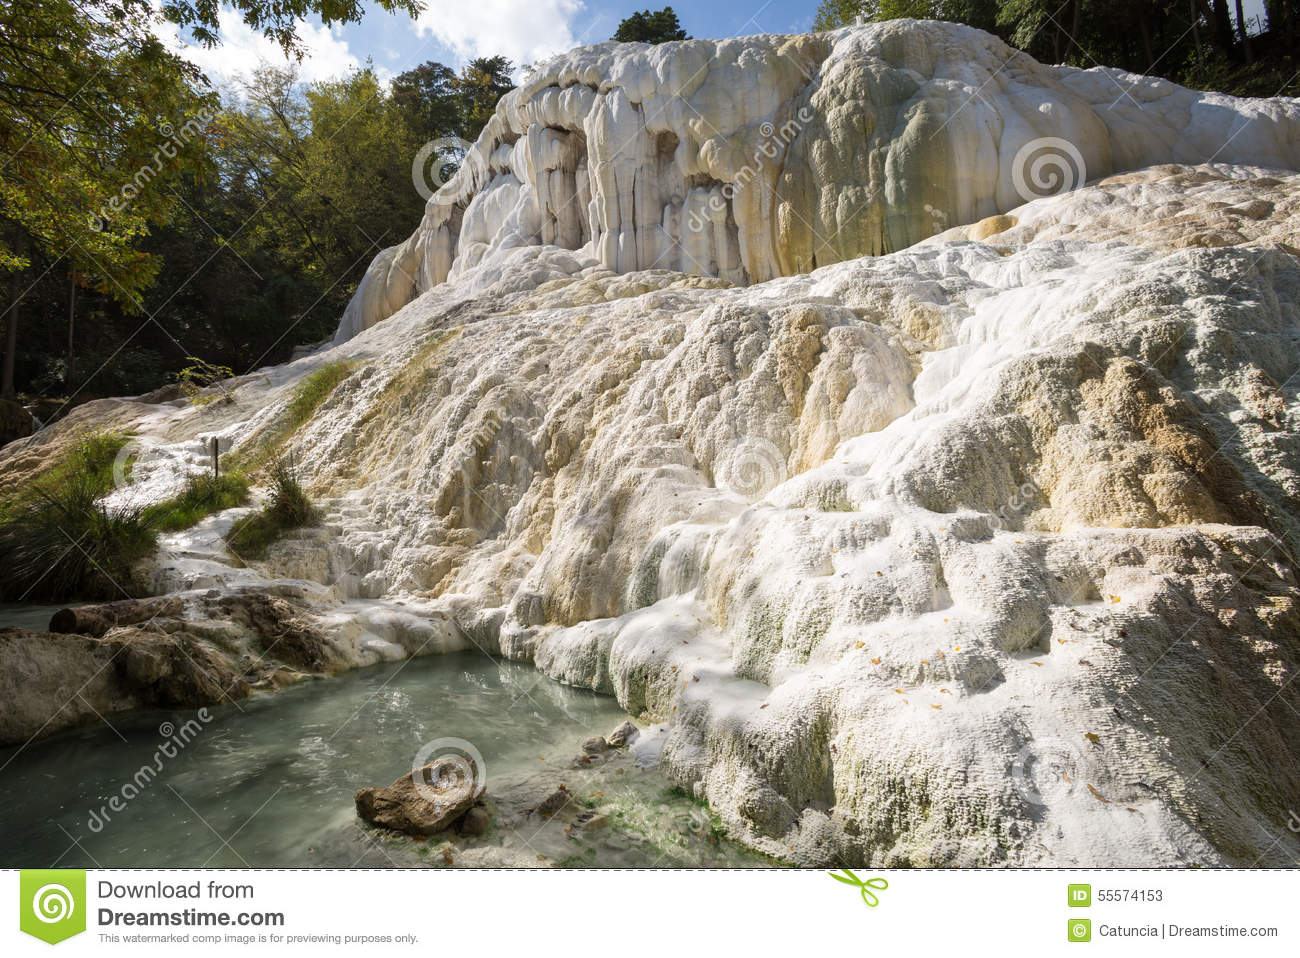 Bagni san filippo hot springs in val d orcia tuscany tuscany planet